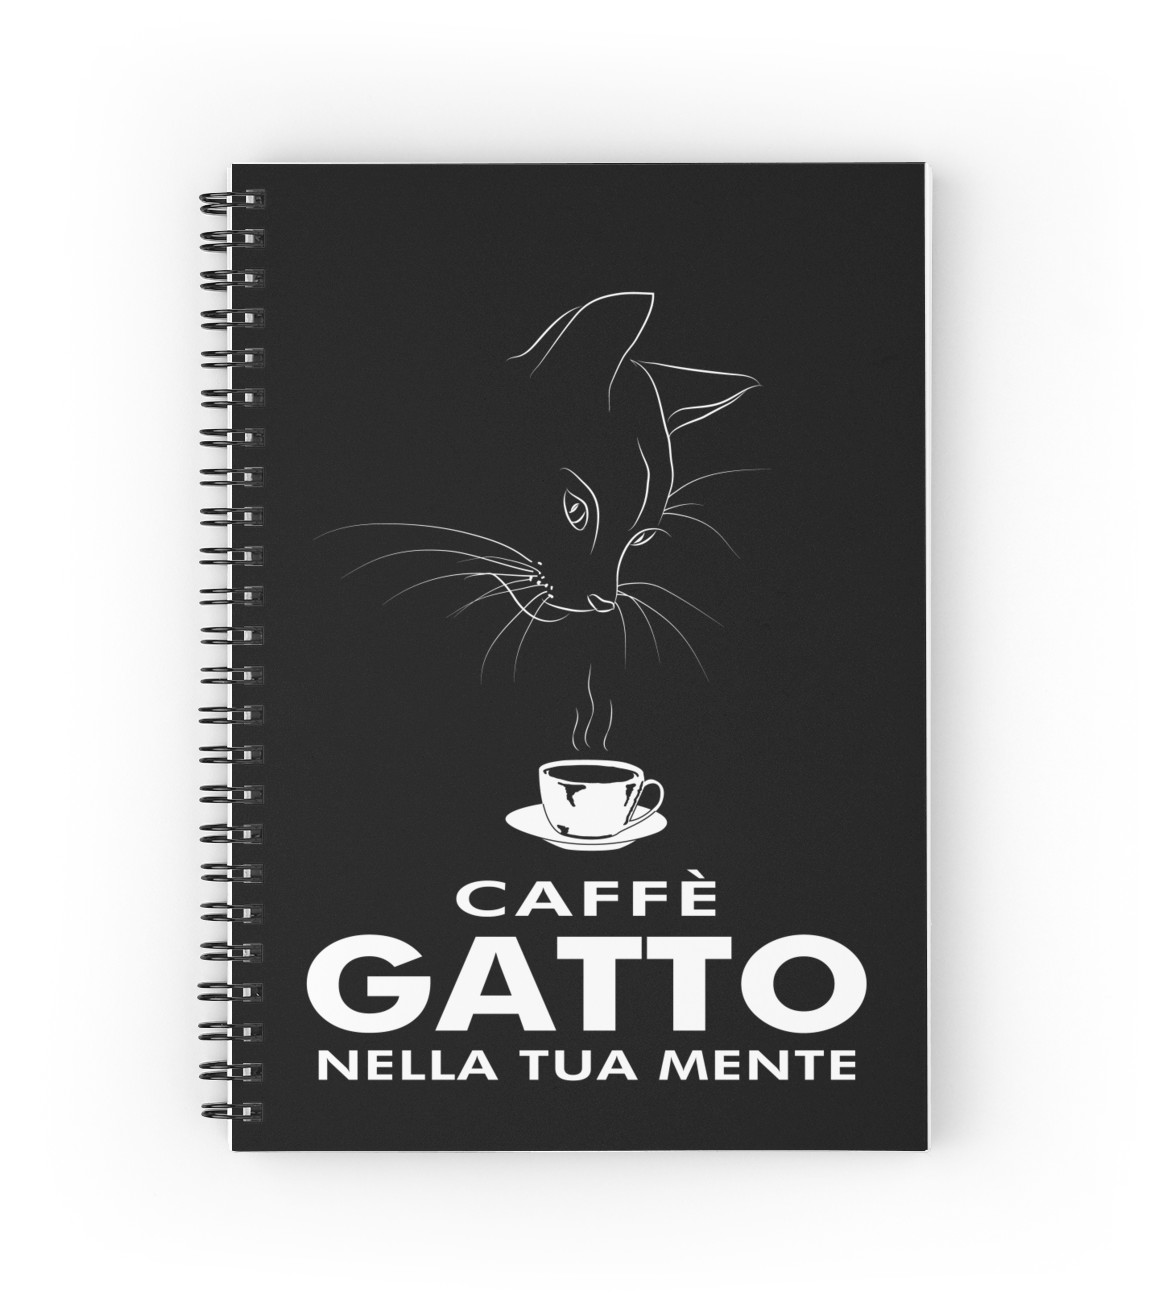 Caffe Gatto artwork printed on spiral notebook